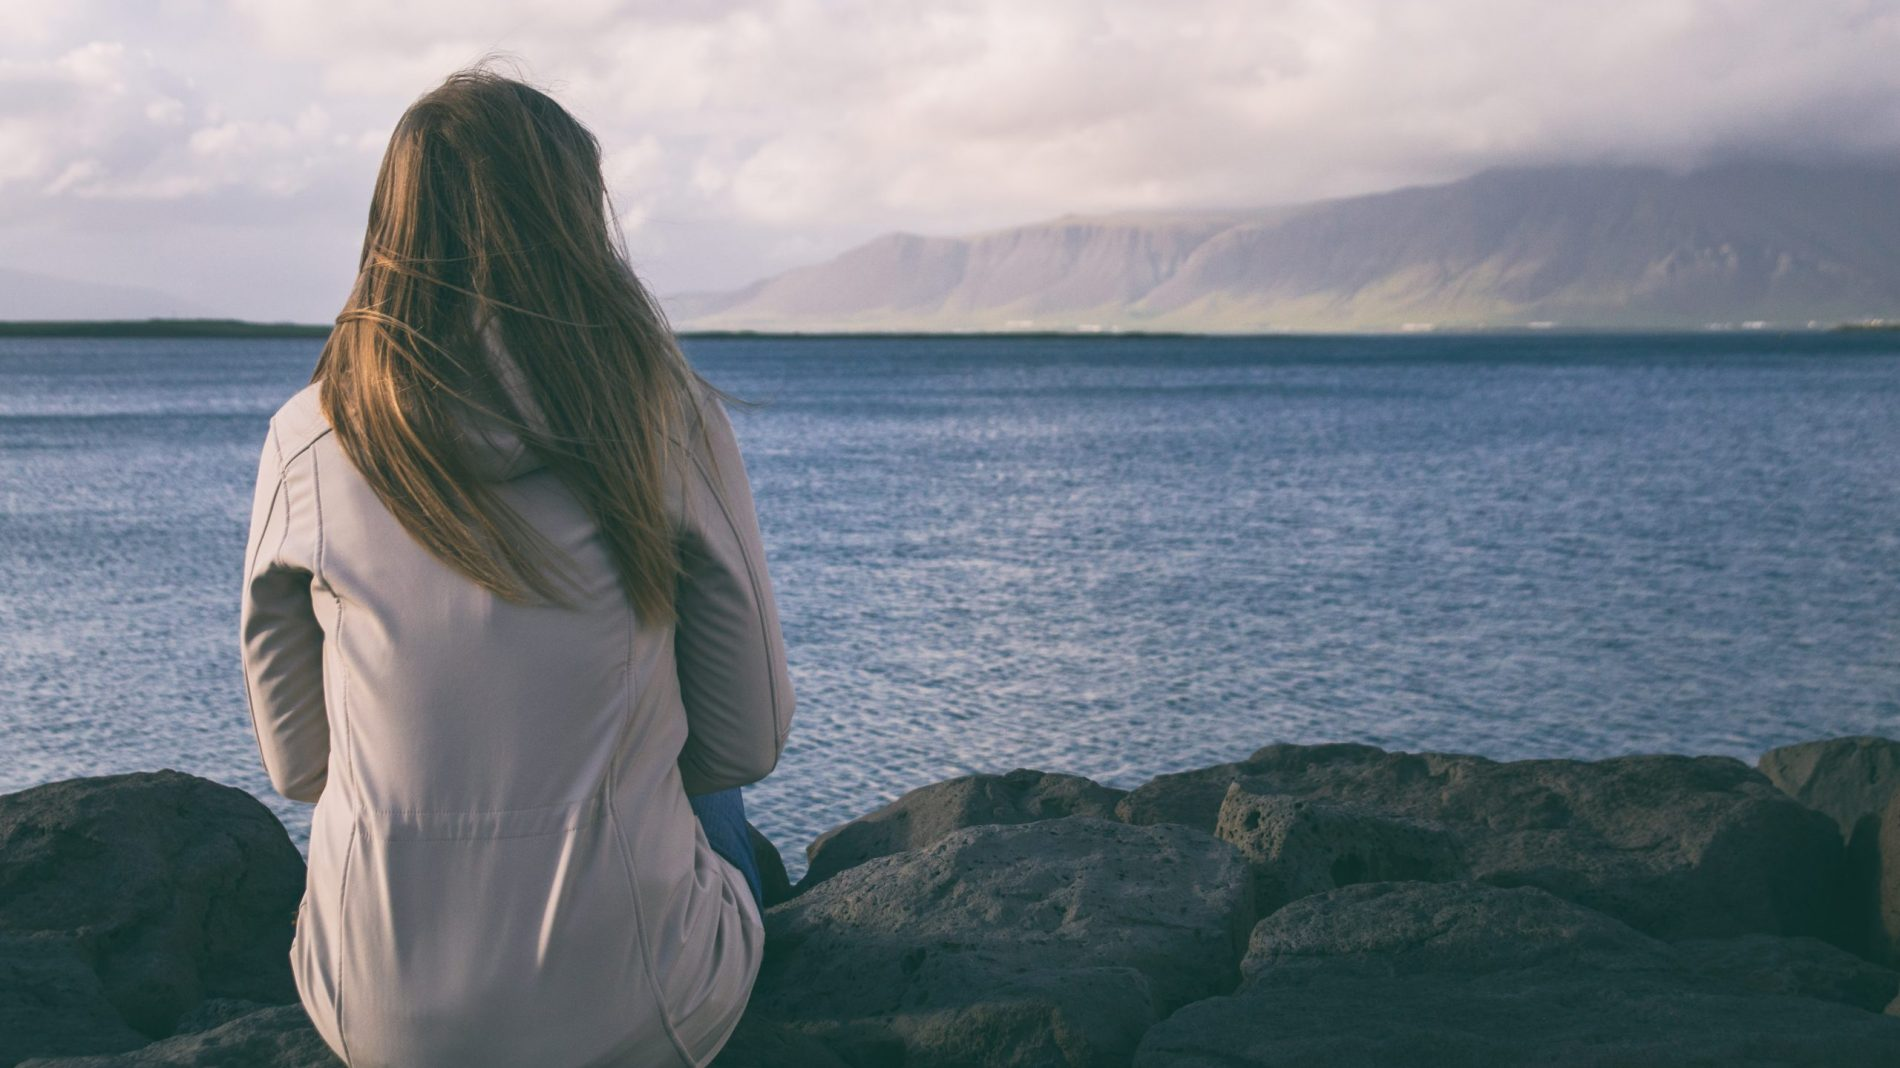 A woman sits looking out at the sea